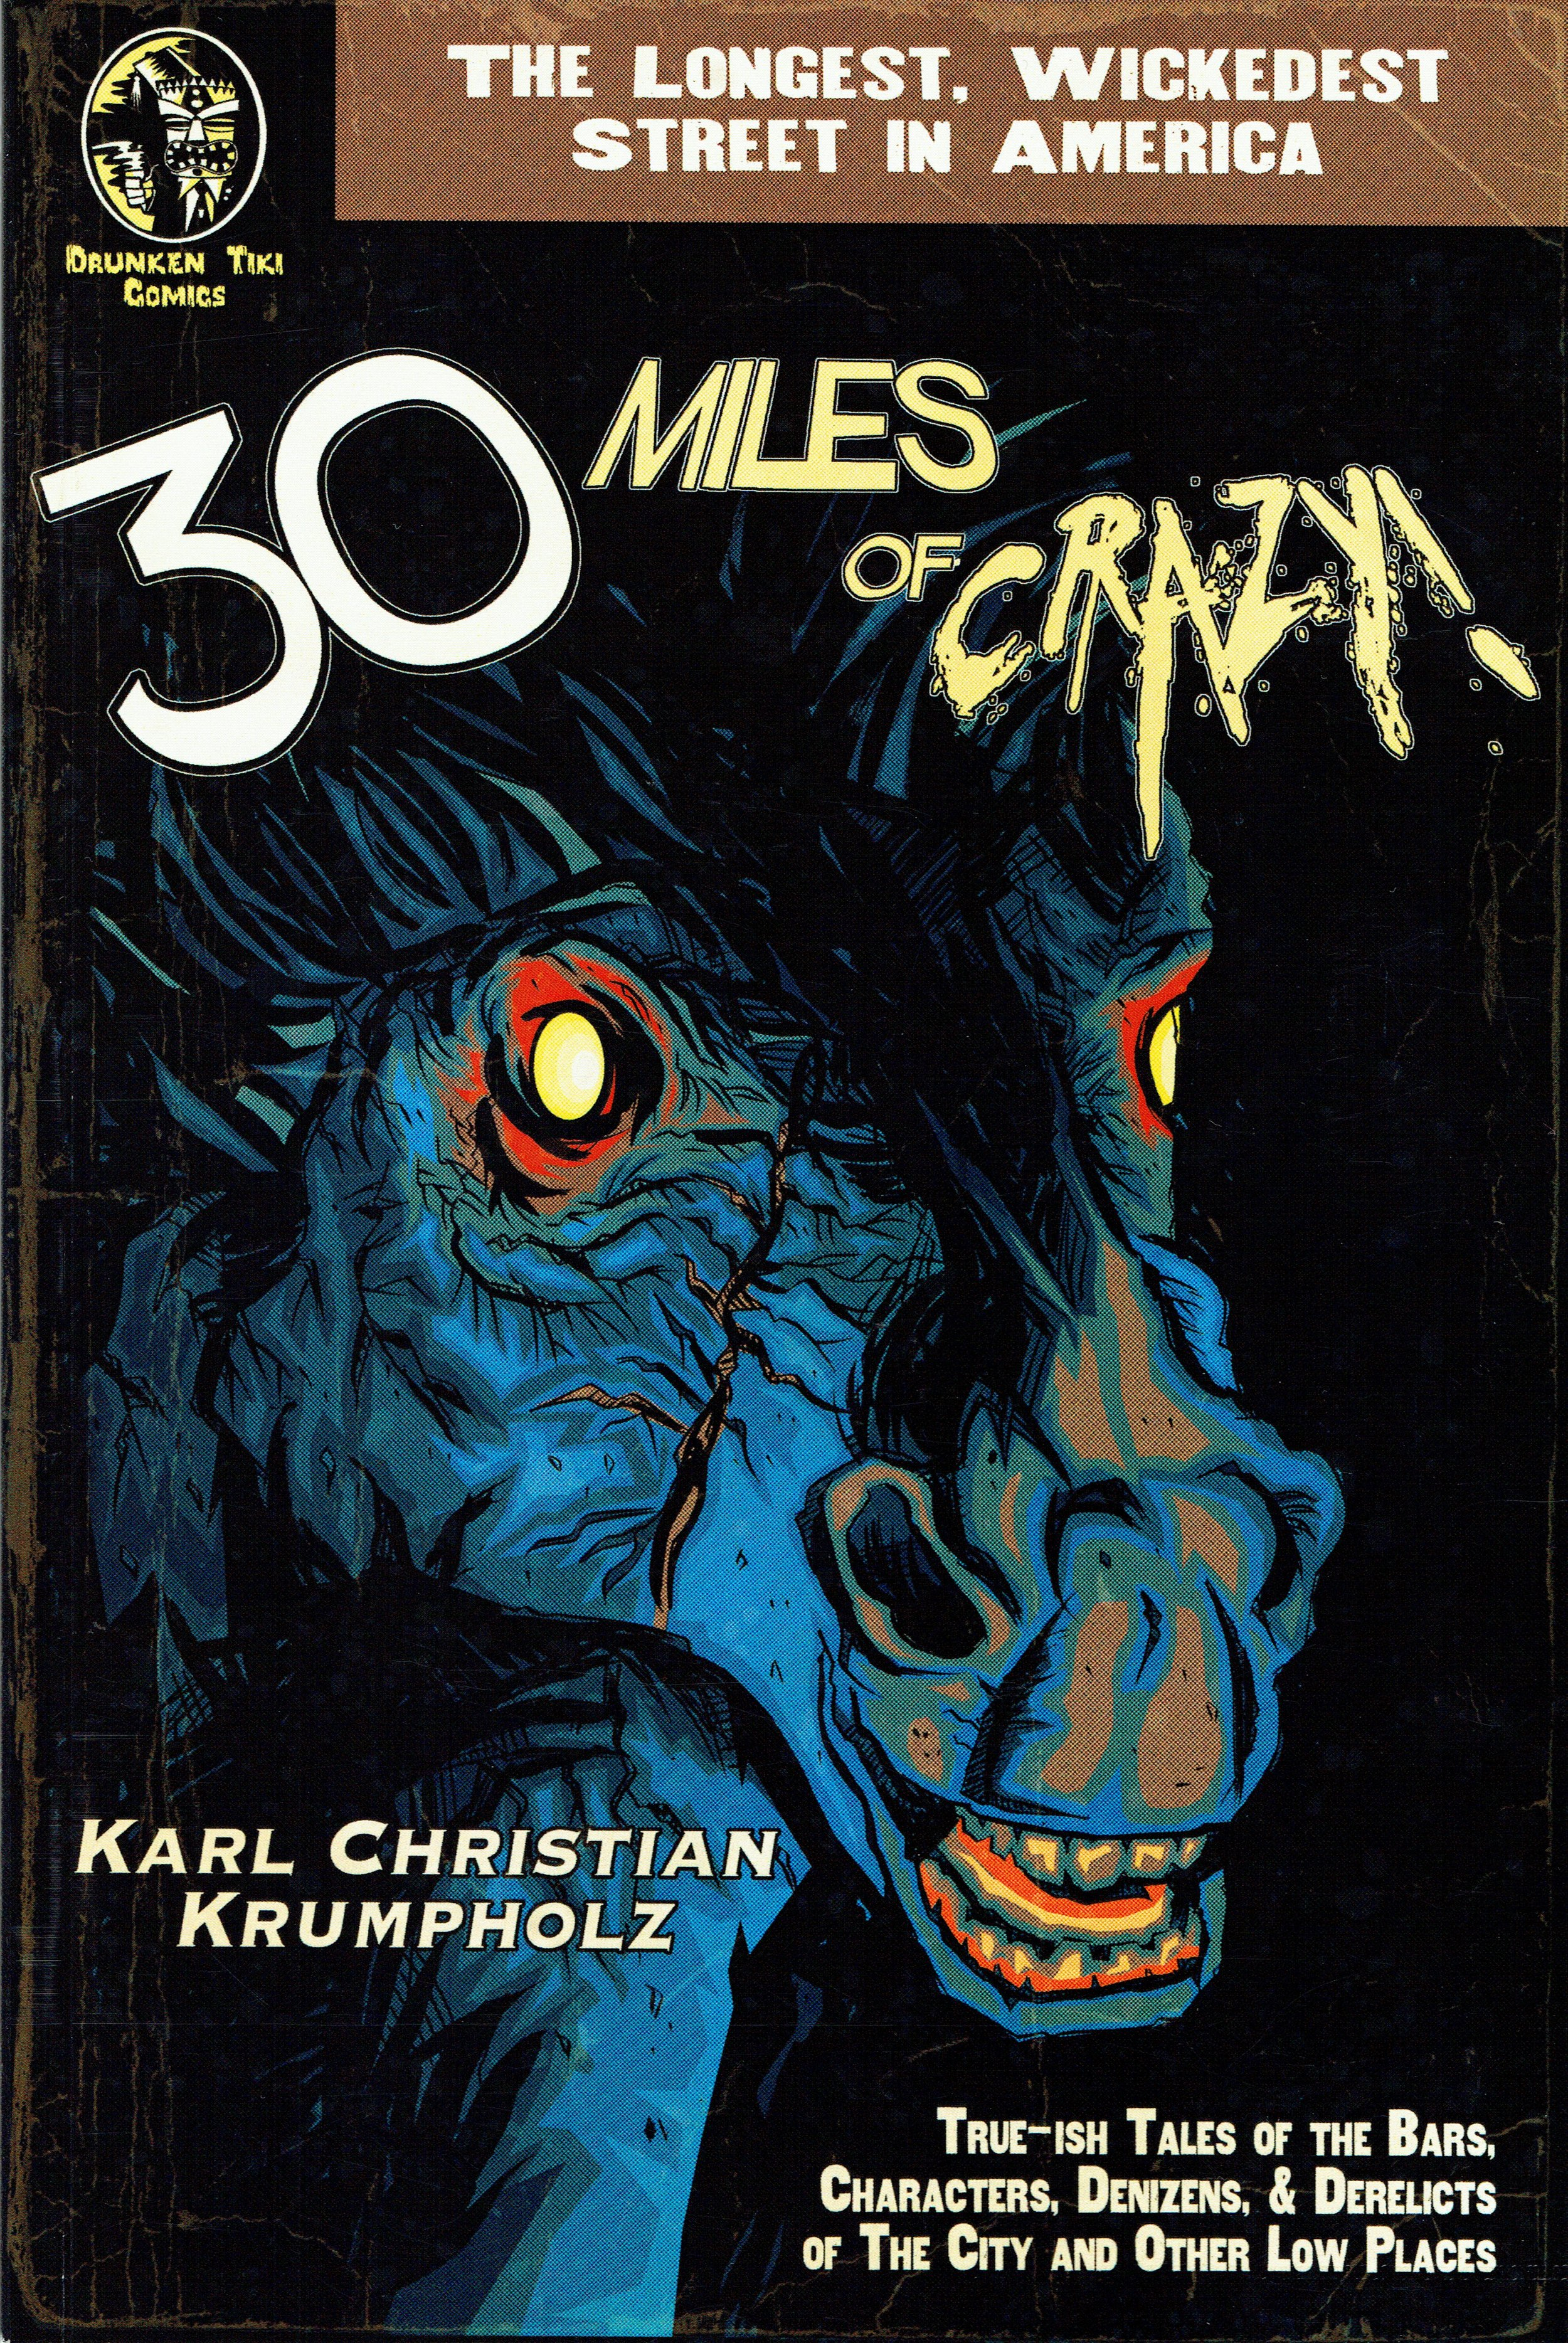 30 Miles of Crazy by Karl Christian Krumpholz.